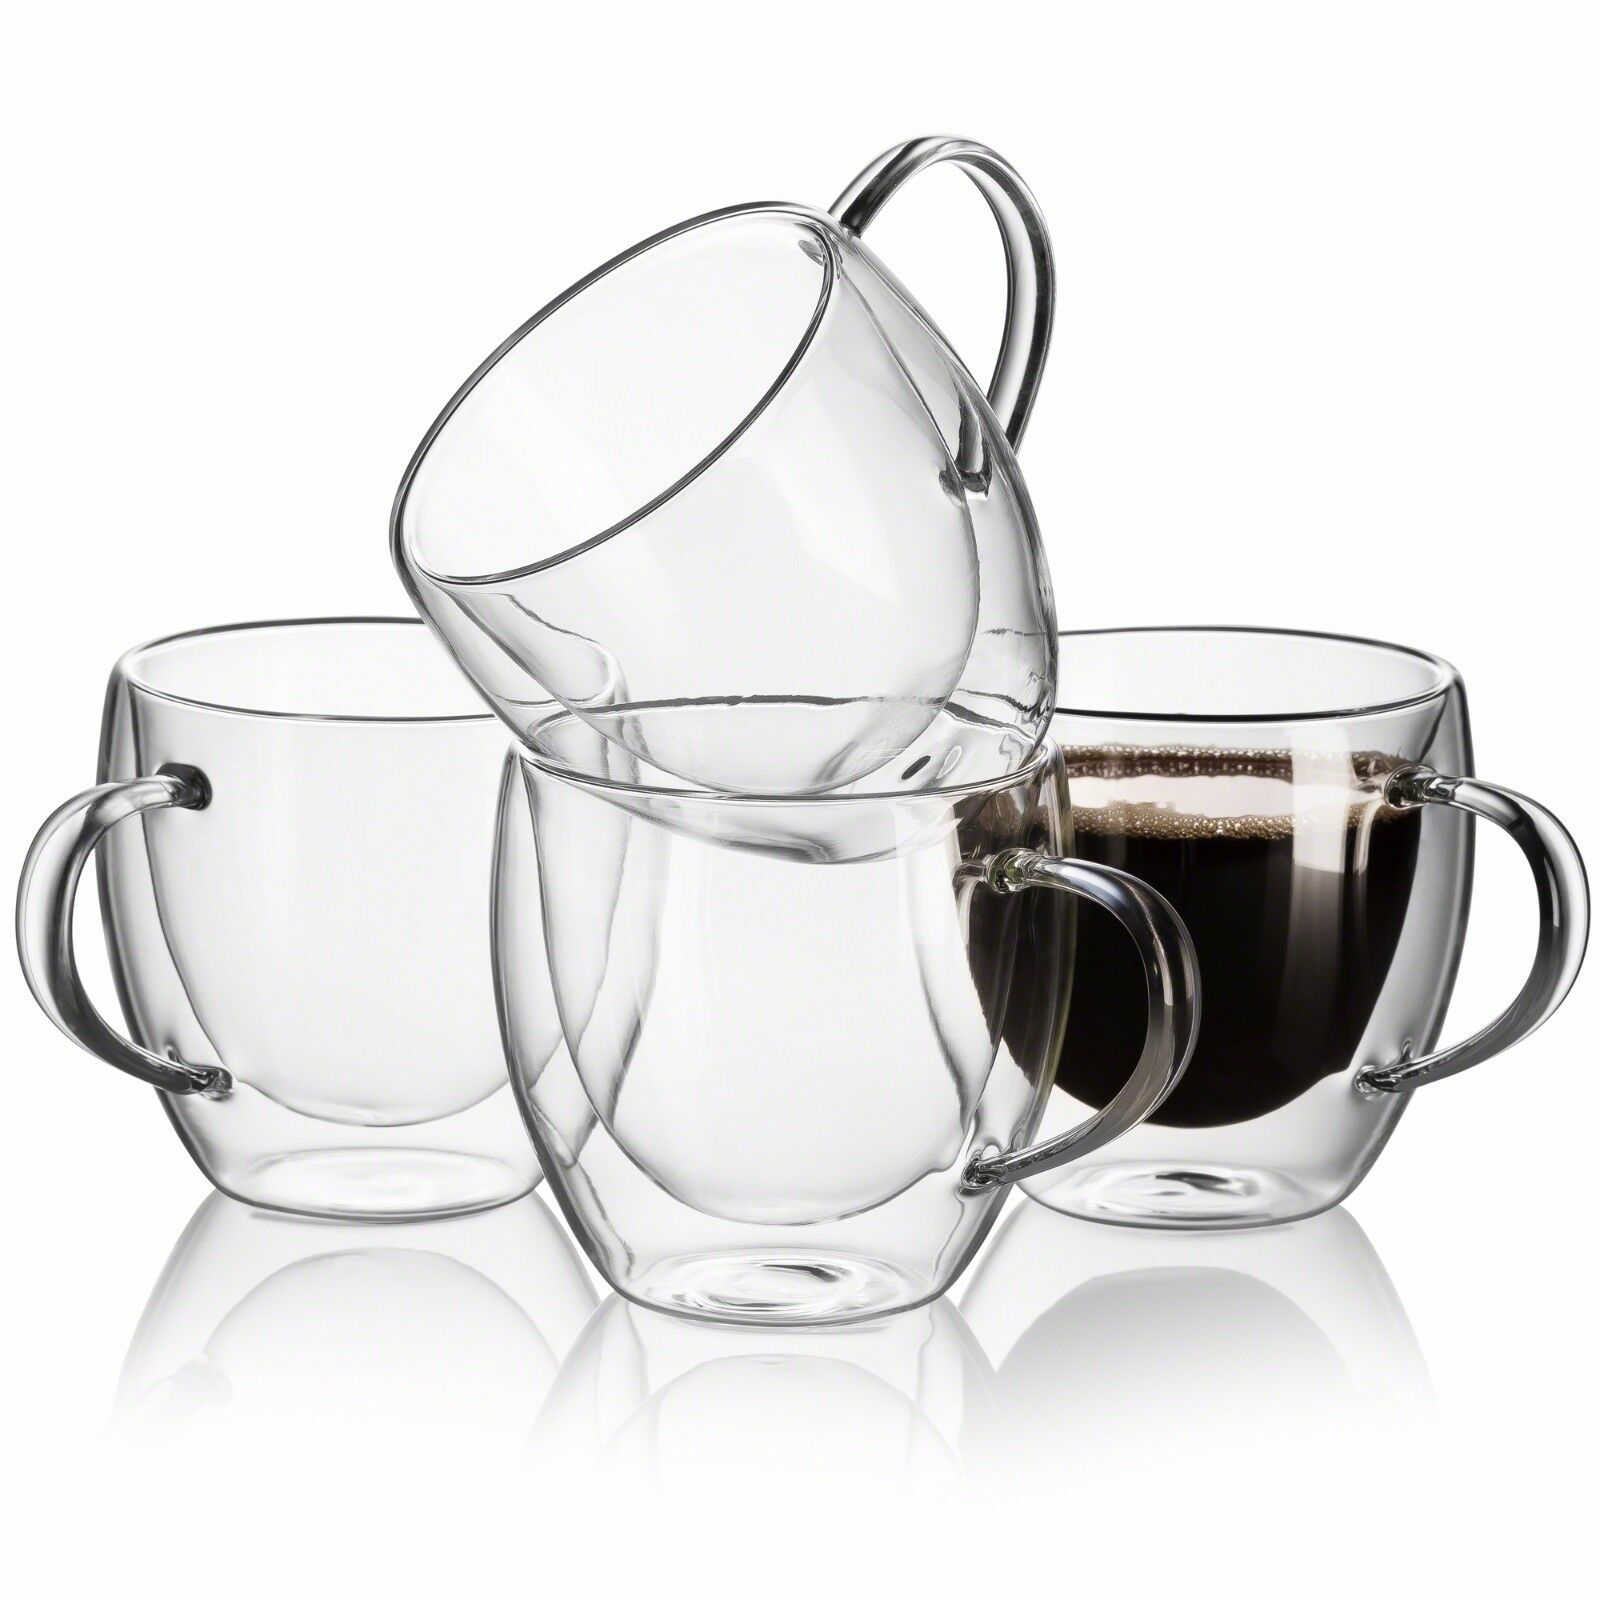 Glass clear coffee cups Set of 2 Breakfast Milk Glass Mugs Tea Espresso Coffee Cup Yogurt Bowl with Handle for Beverages